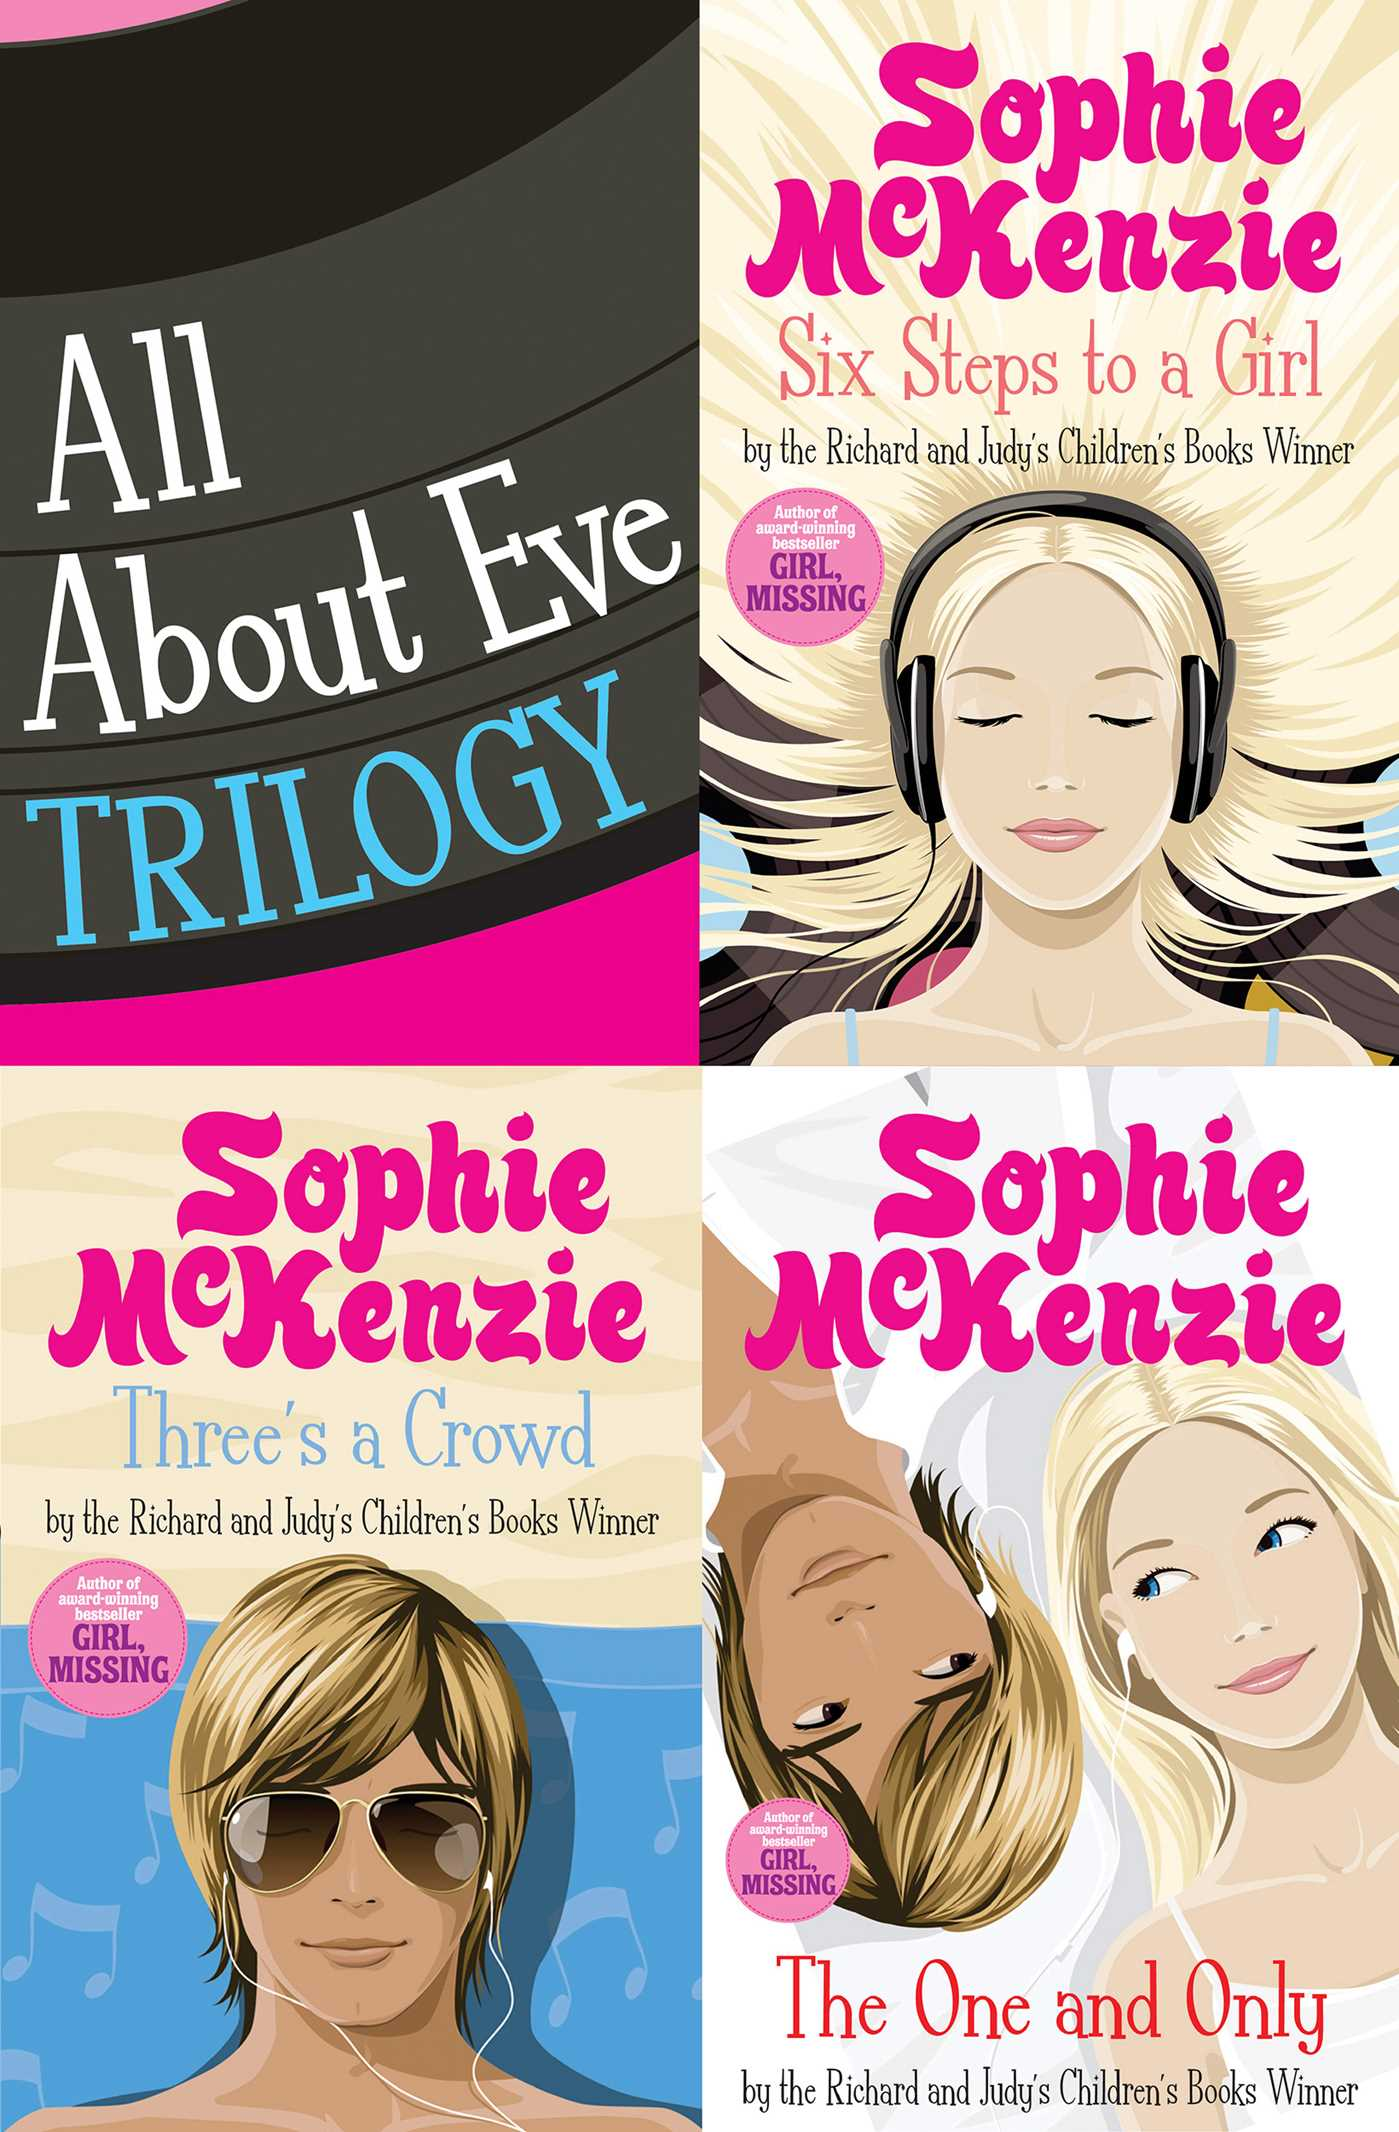 All about eve trilogy ebook by sophie mckenzie official publisher ebook 9781471121609 author photo jpg sophie mckenzie fandeluxe Image collections